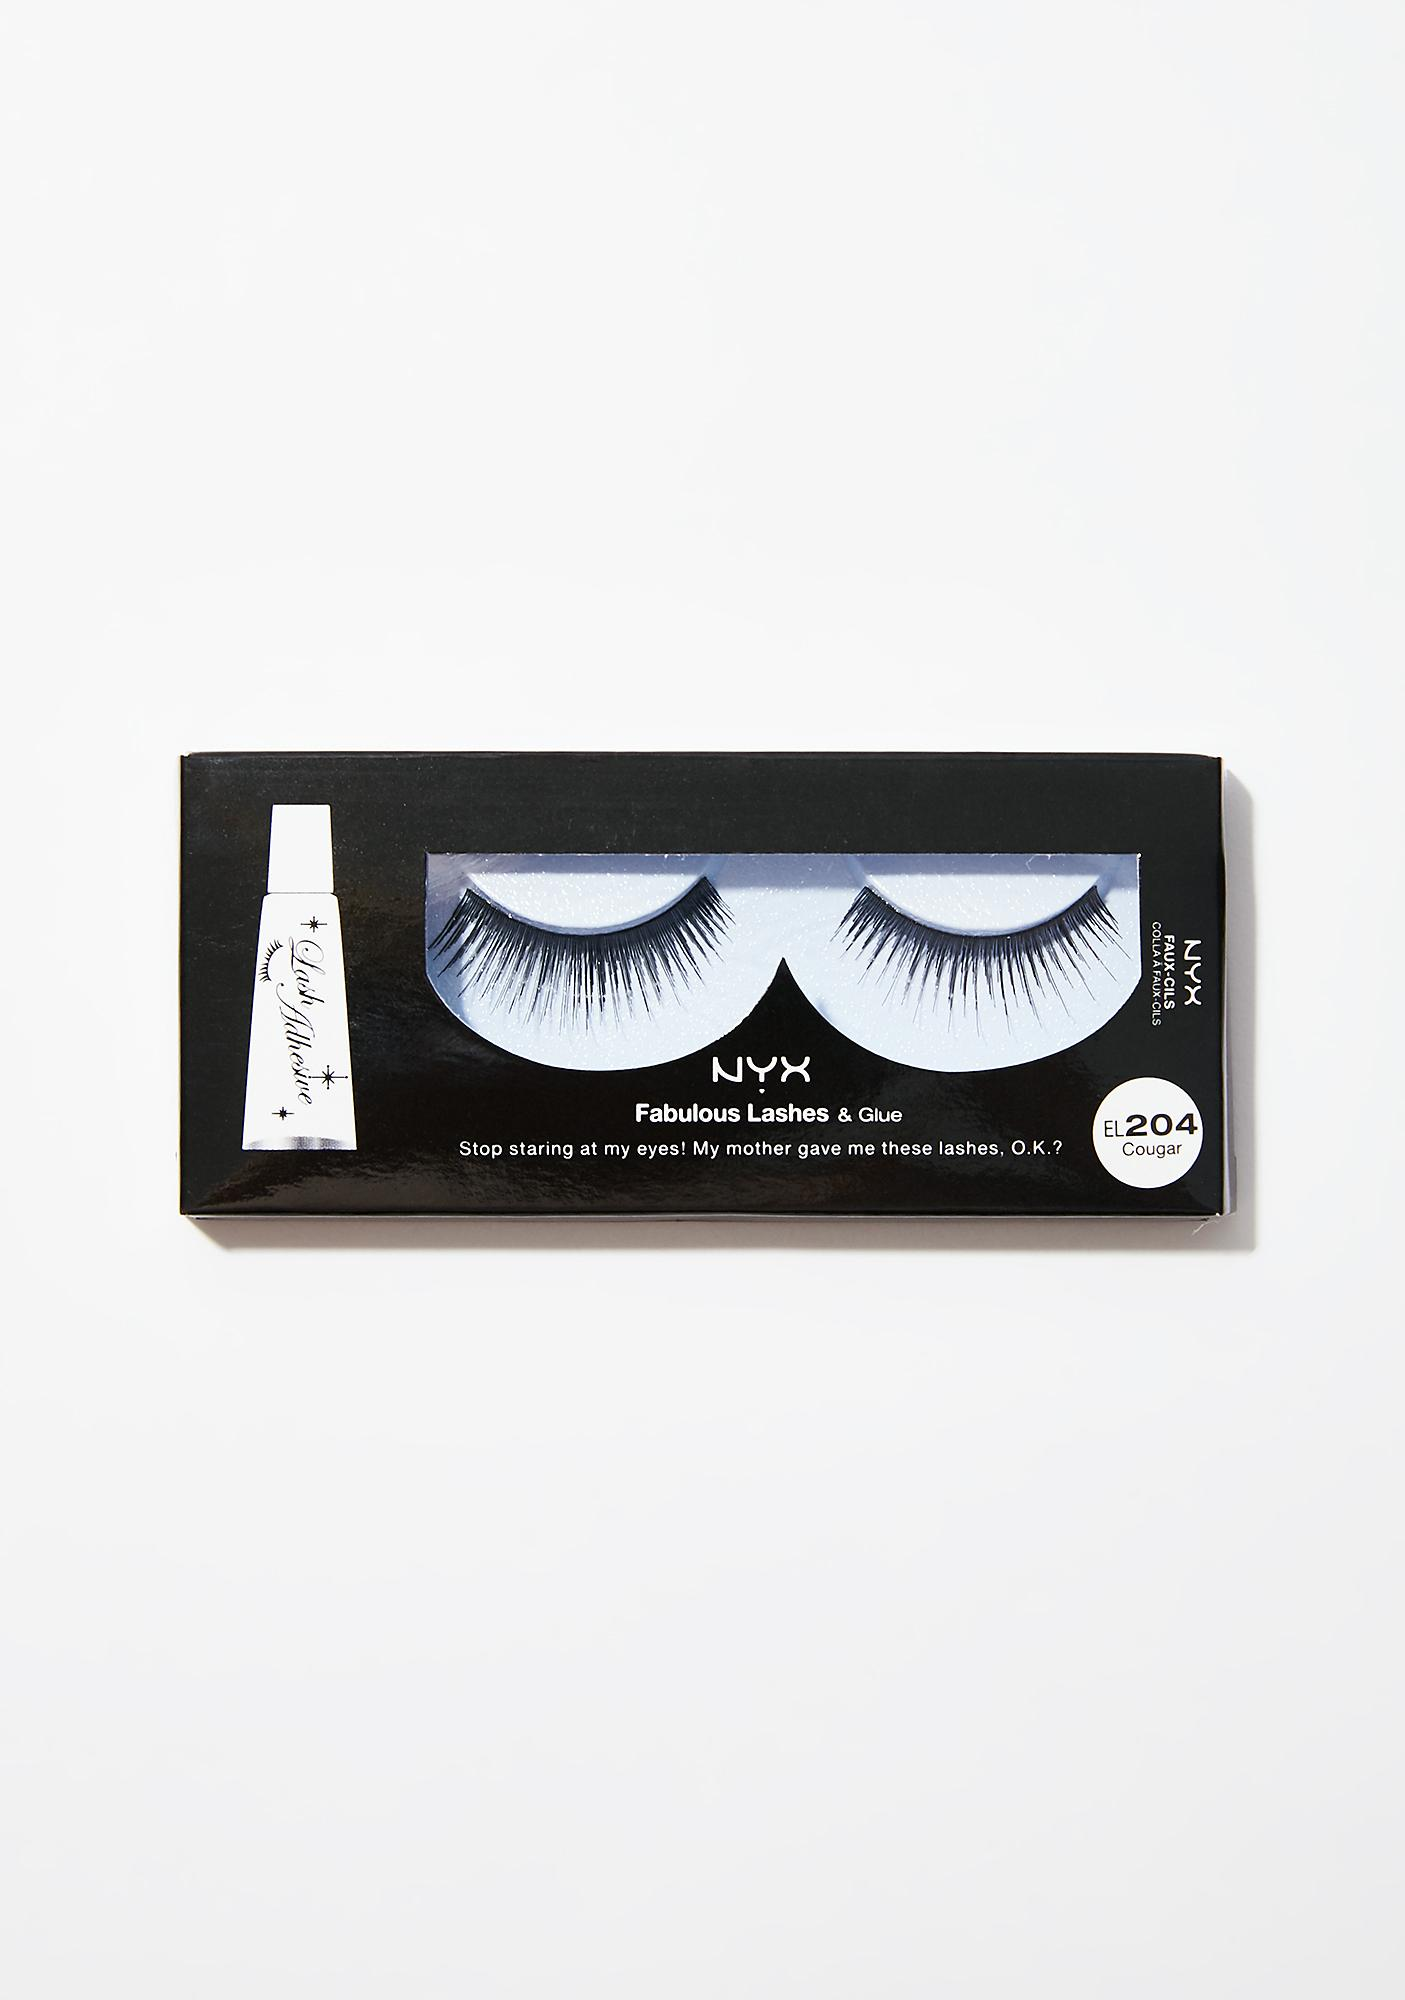 NYX Cougar Fabulous Lashes & Glue